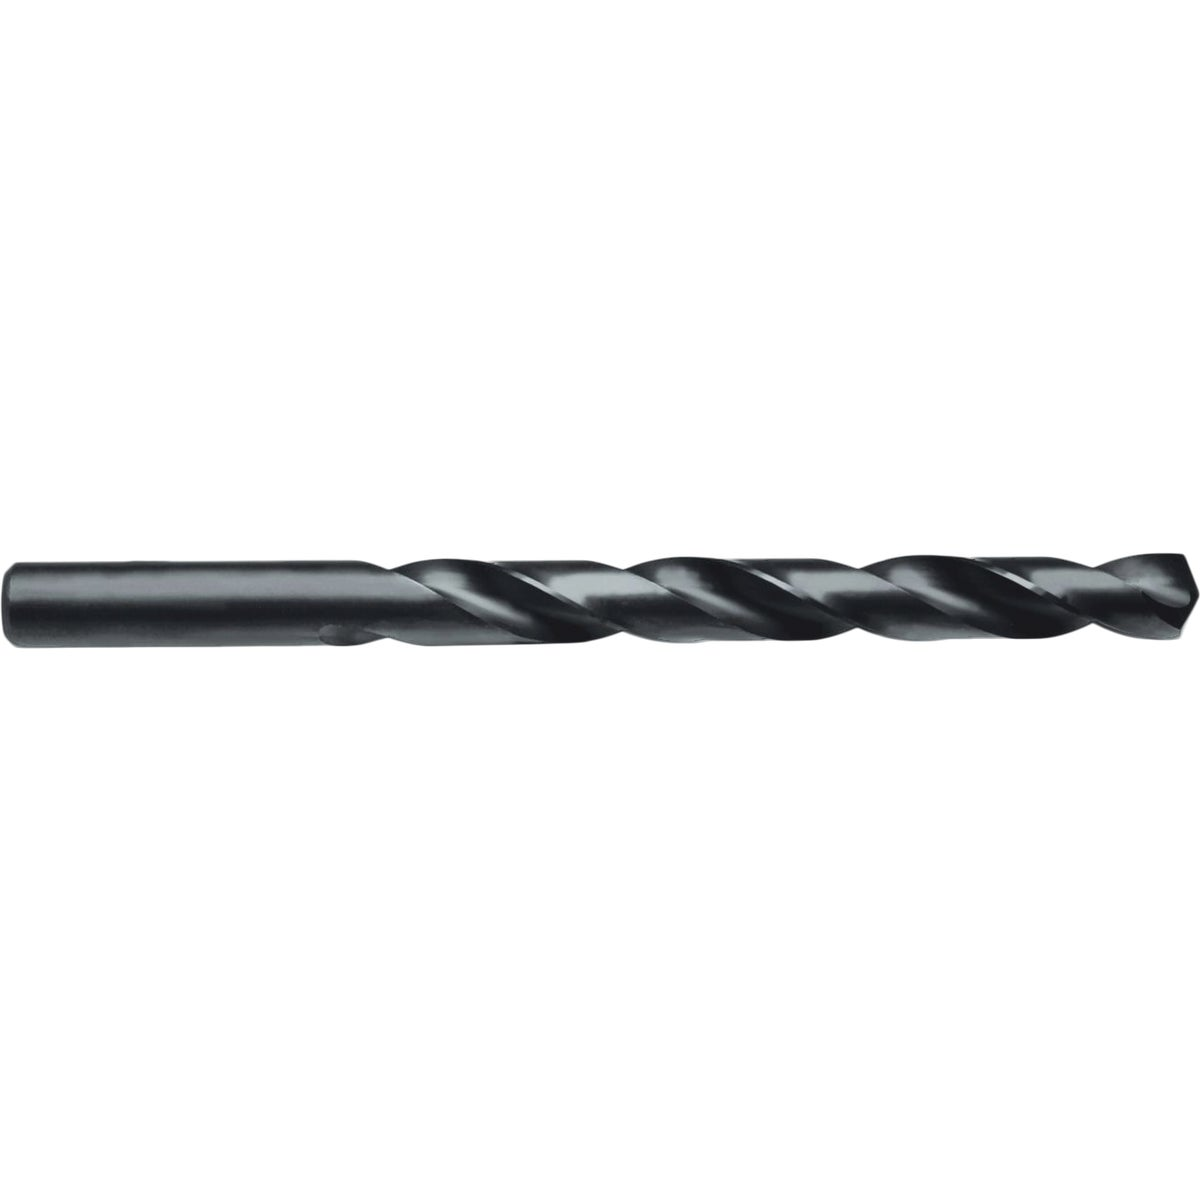 "19/64"" BLACK OXIDE BIT - DW1119 by DeWalt"